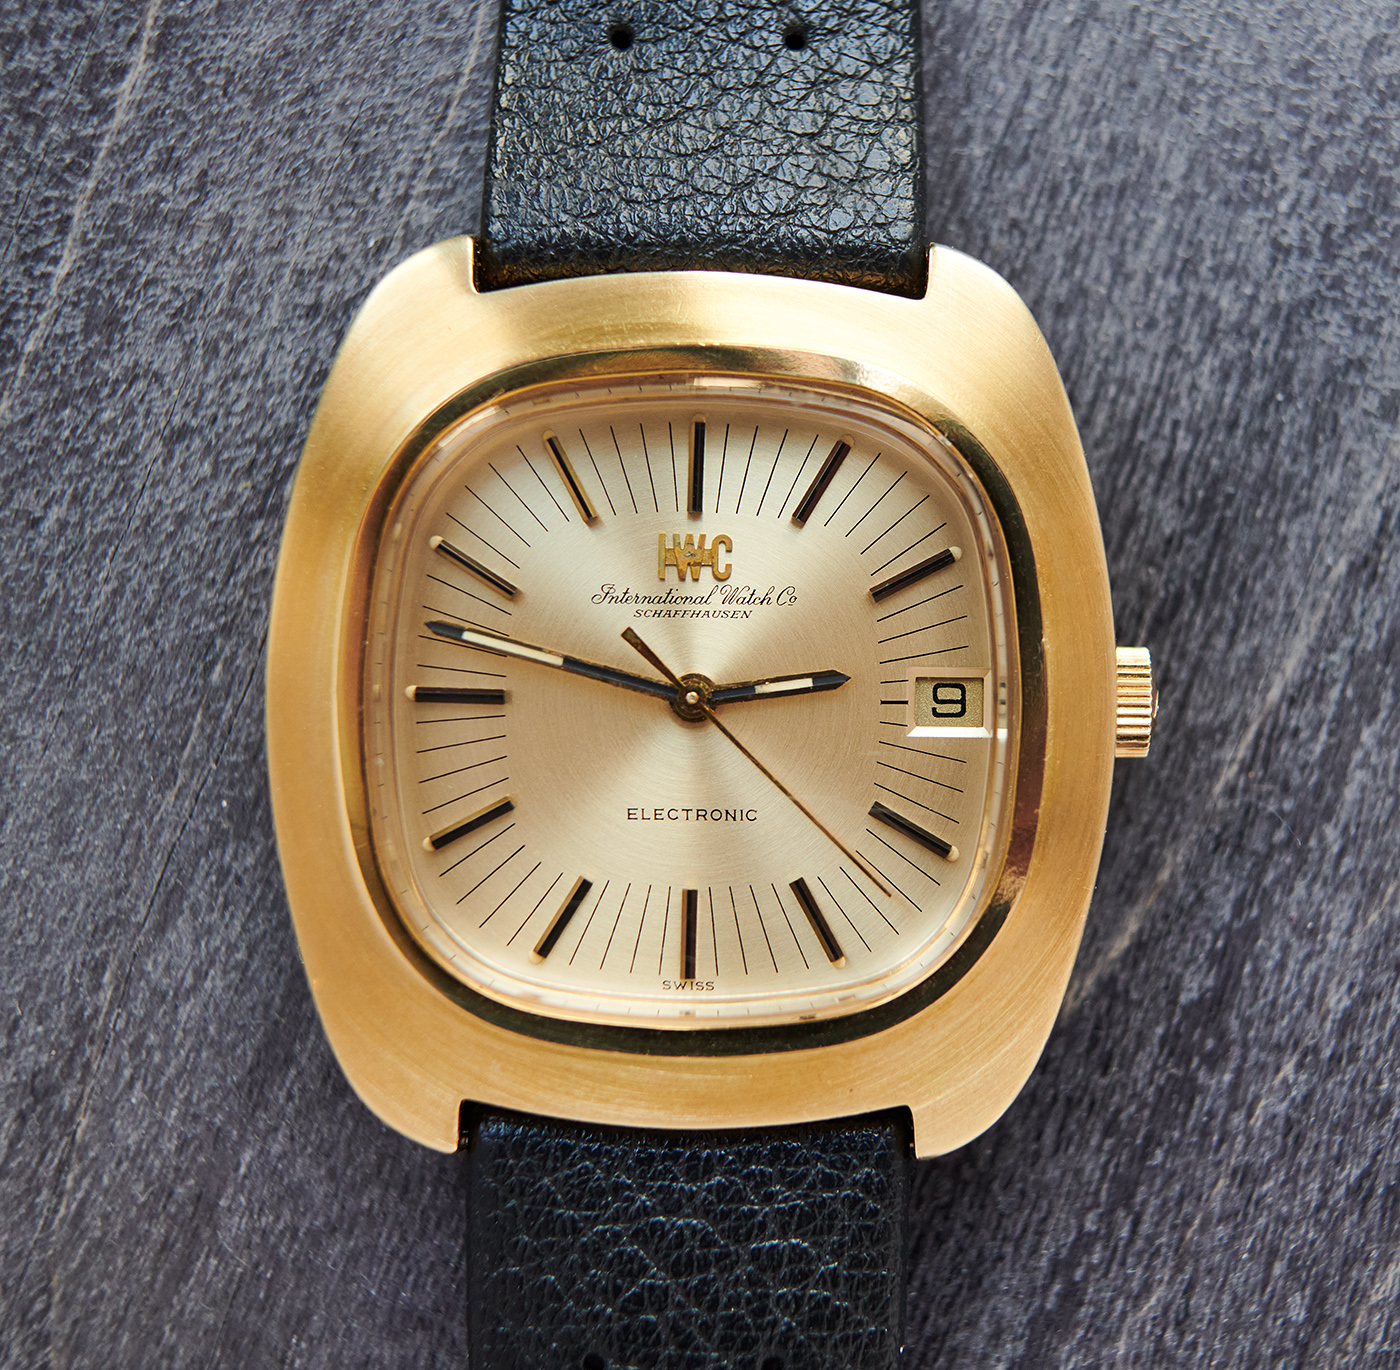 iwc 3470 tuning fork 18k gold